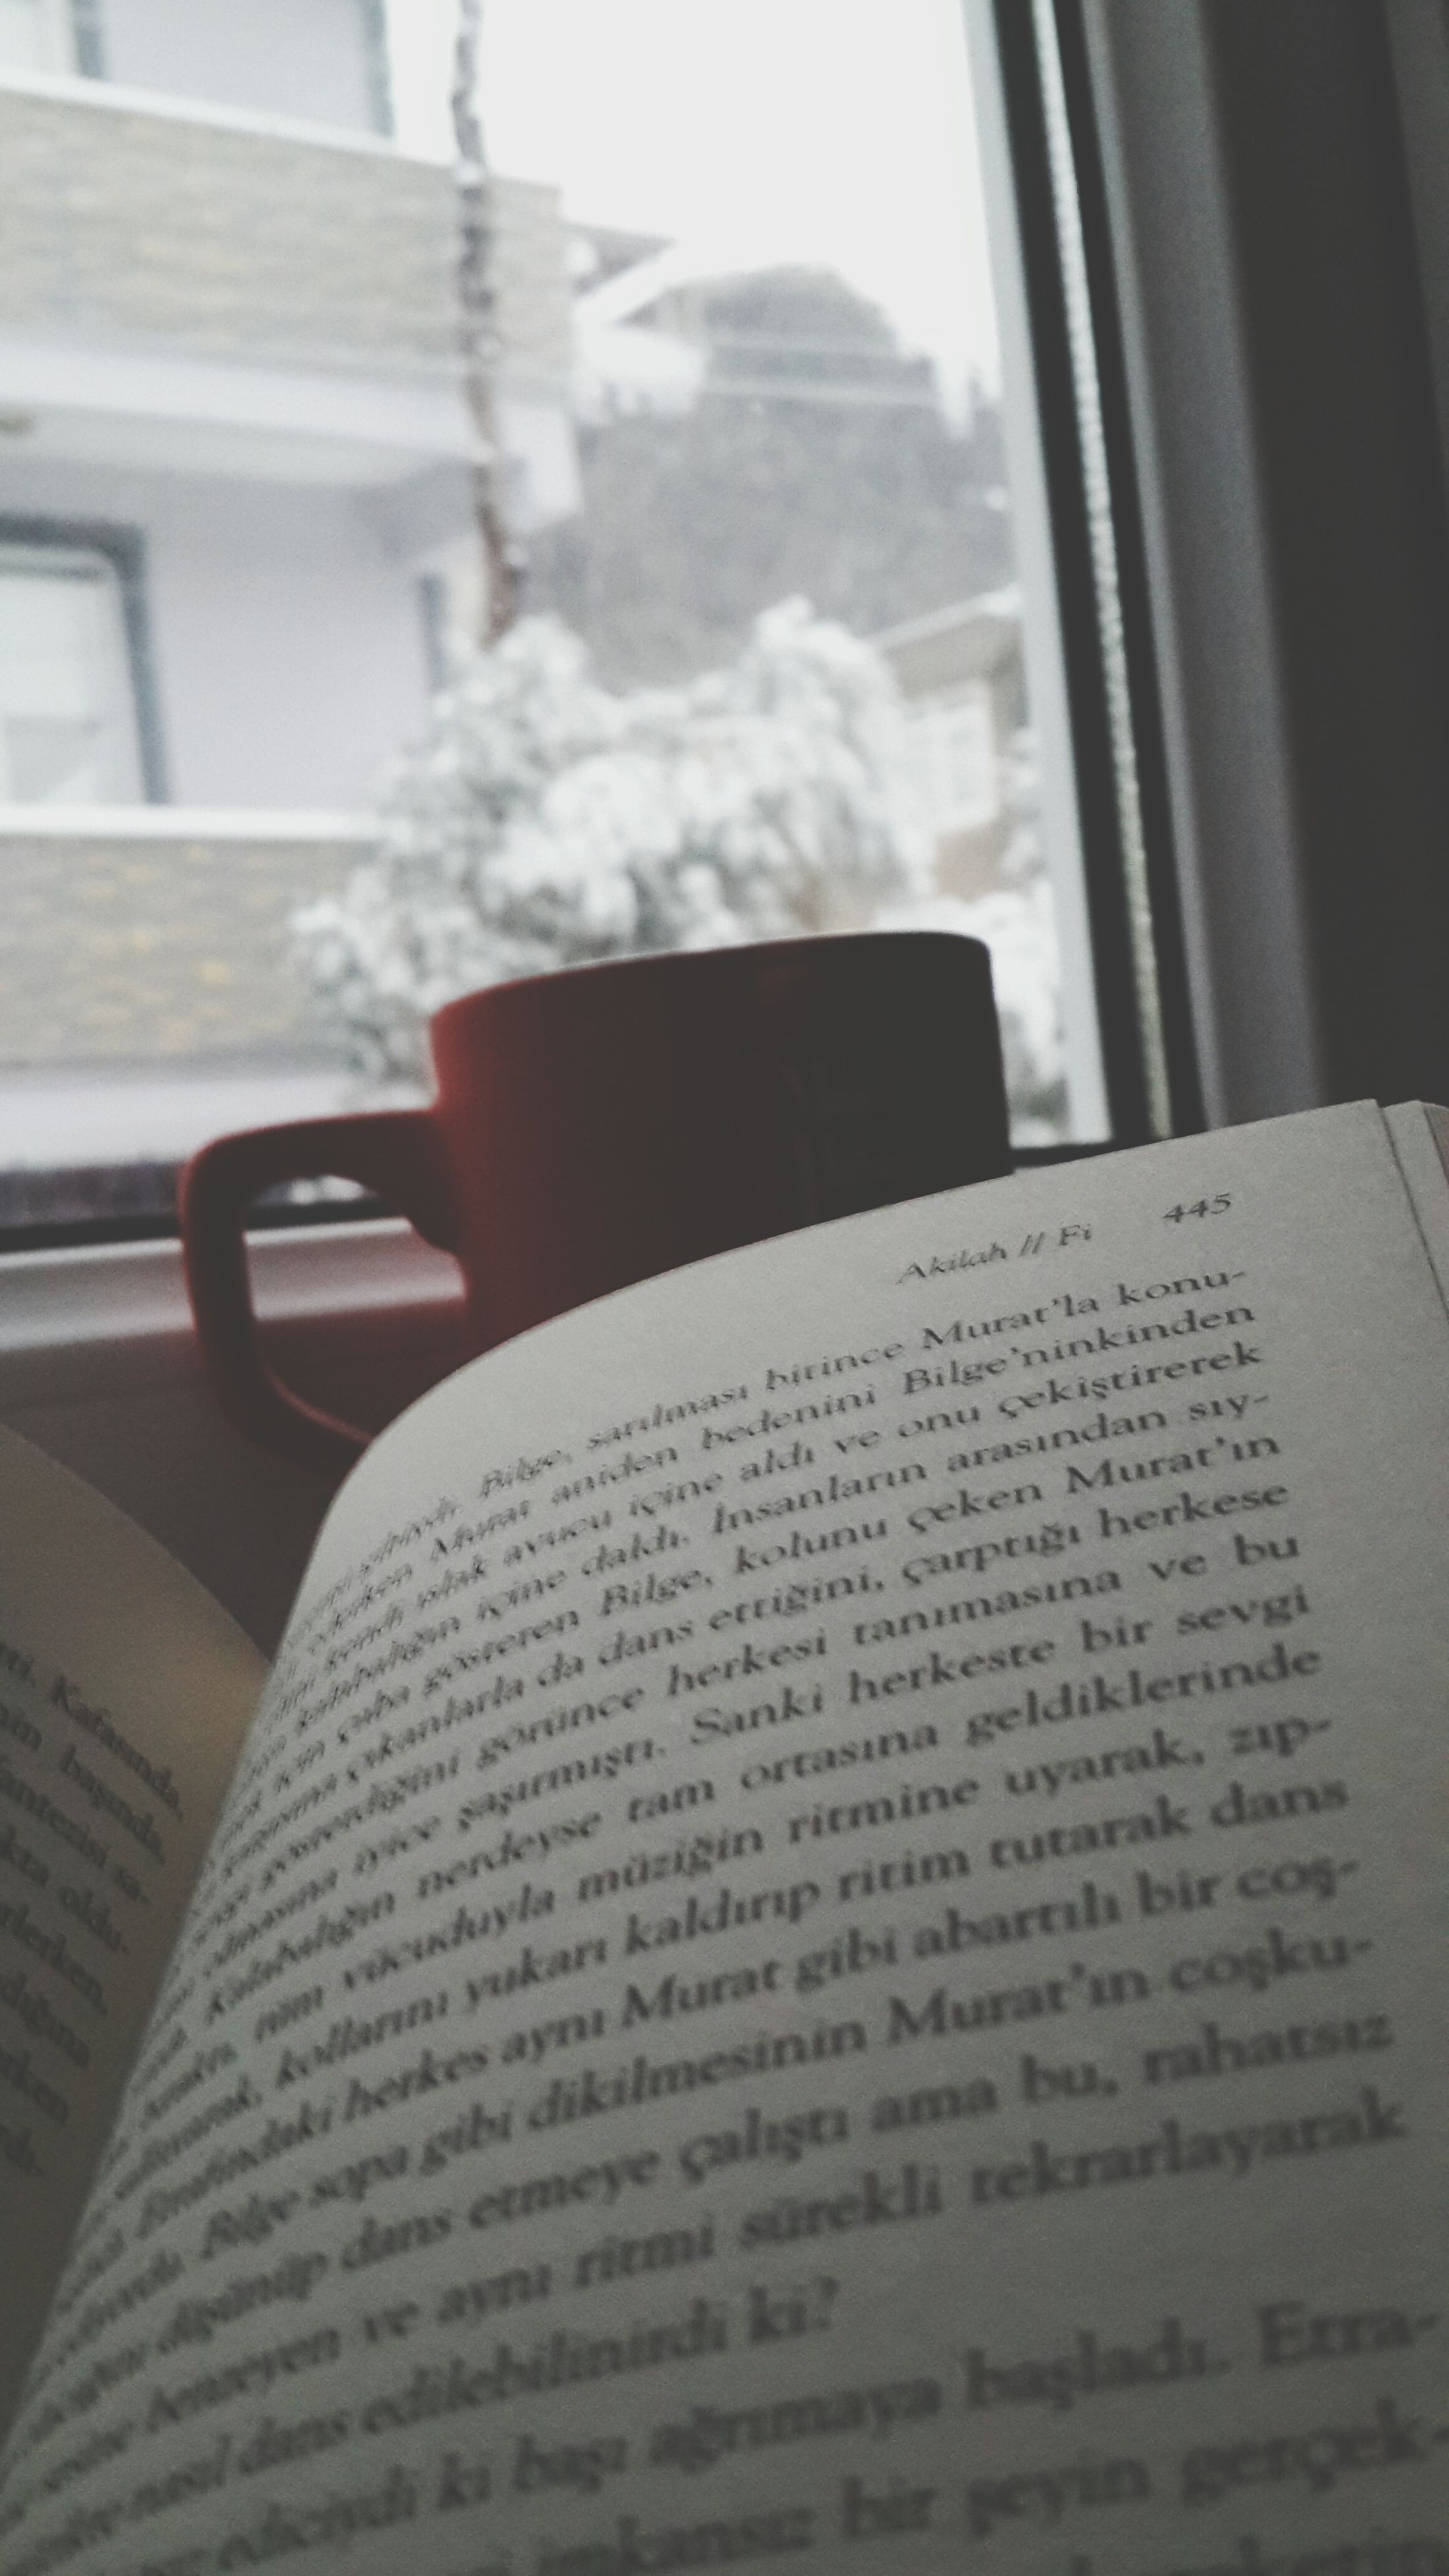 indoors, book, close-up, focus on foreground, table, communication, home interior, selective focus, text, still life, window, education, paper, open, day, western script, no people, absence, single object, bed